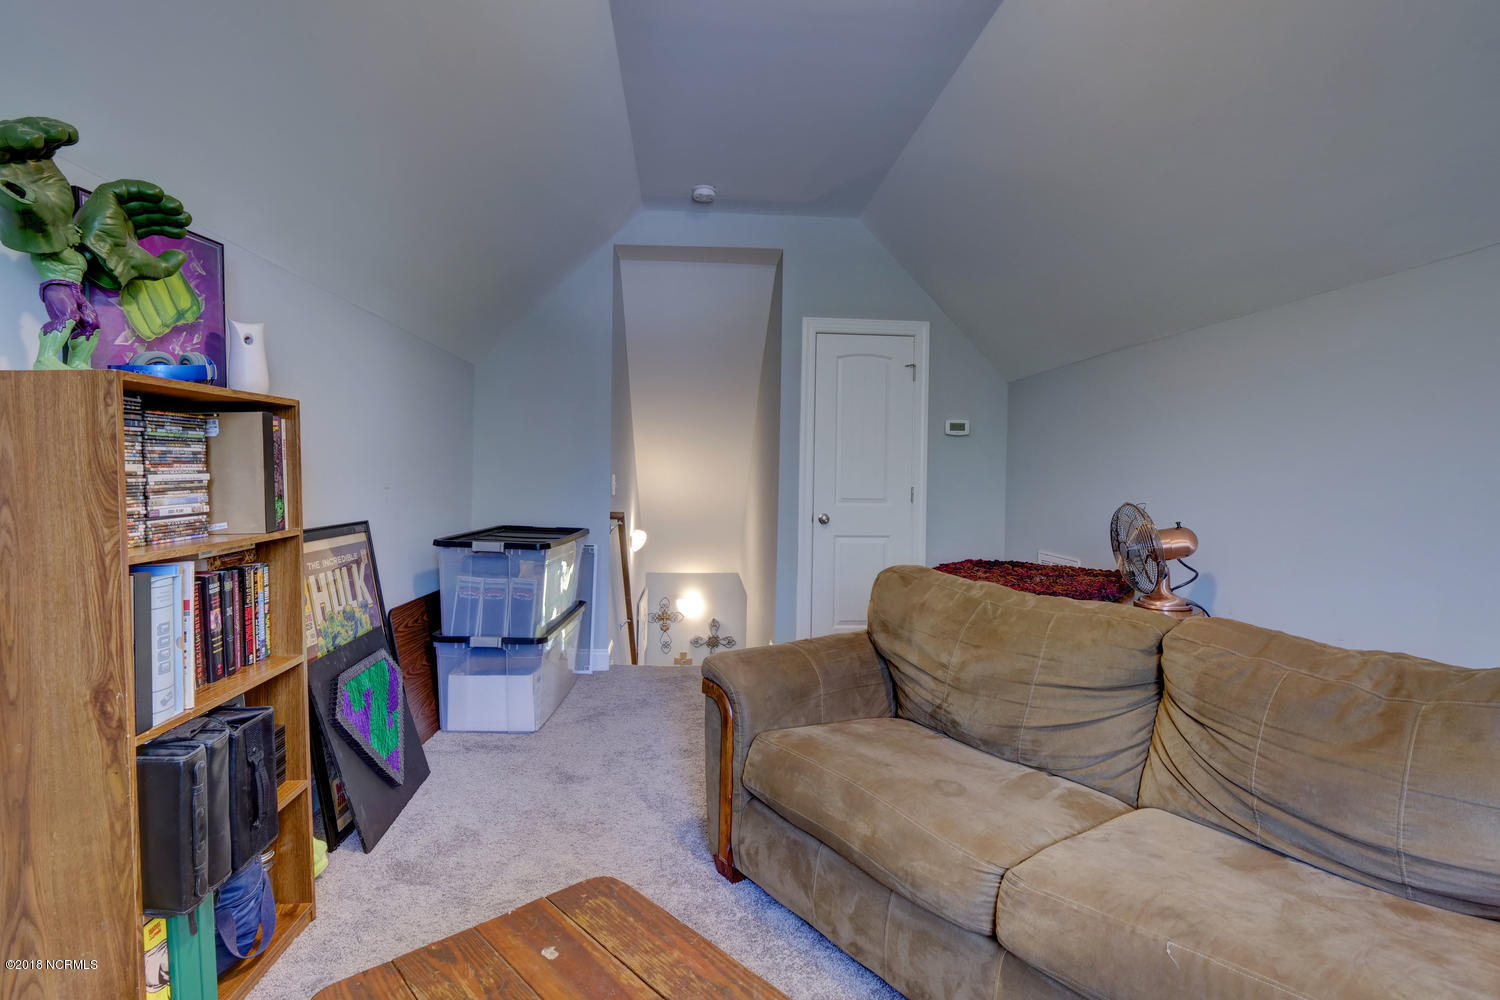 Home Images